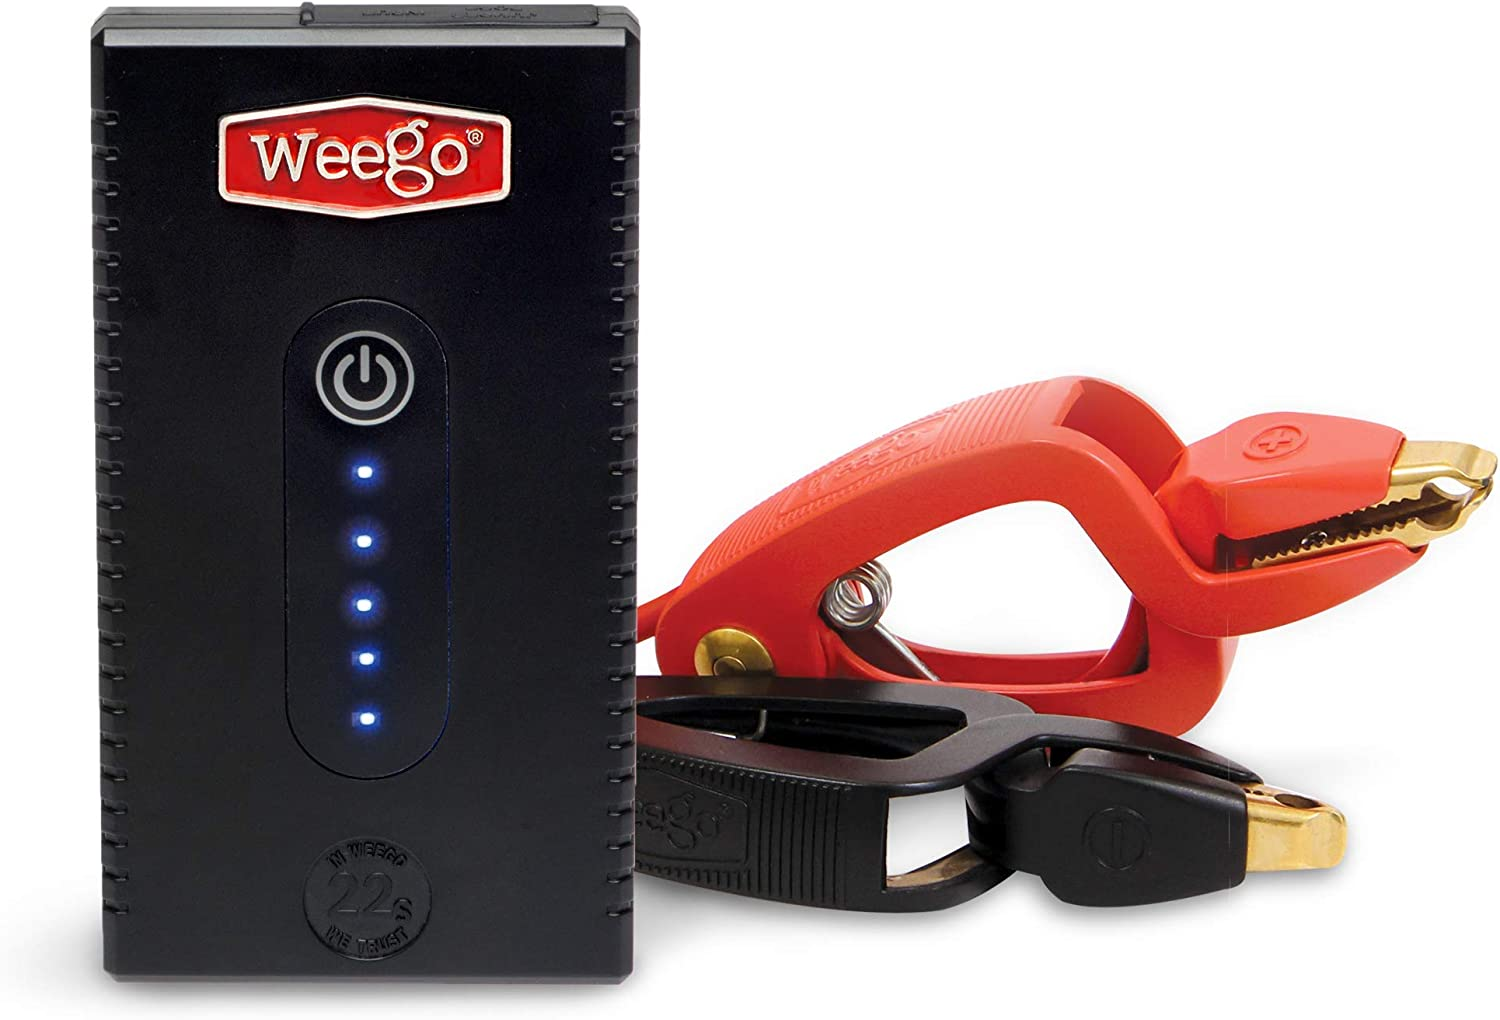 Weego 22s Jump Starter 1700 Peak 300 Cranking Amps Simple and Safe Lithium IonWater Resistant USA Designed and Engineered